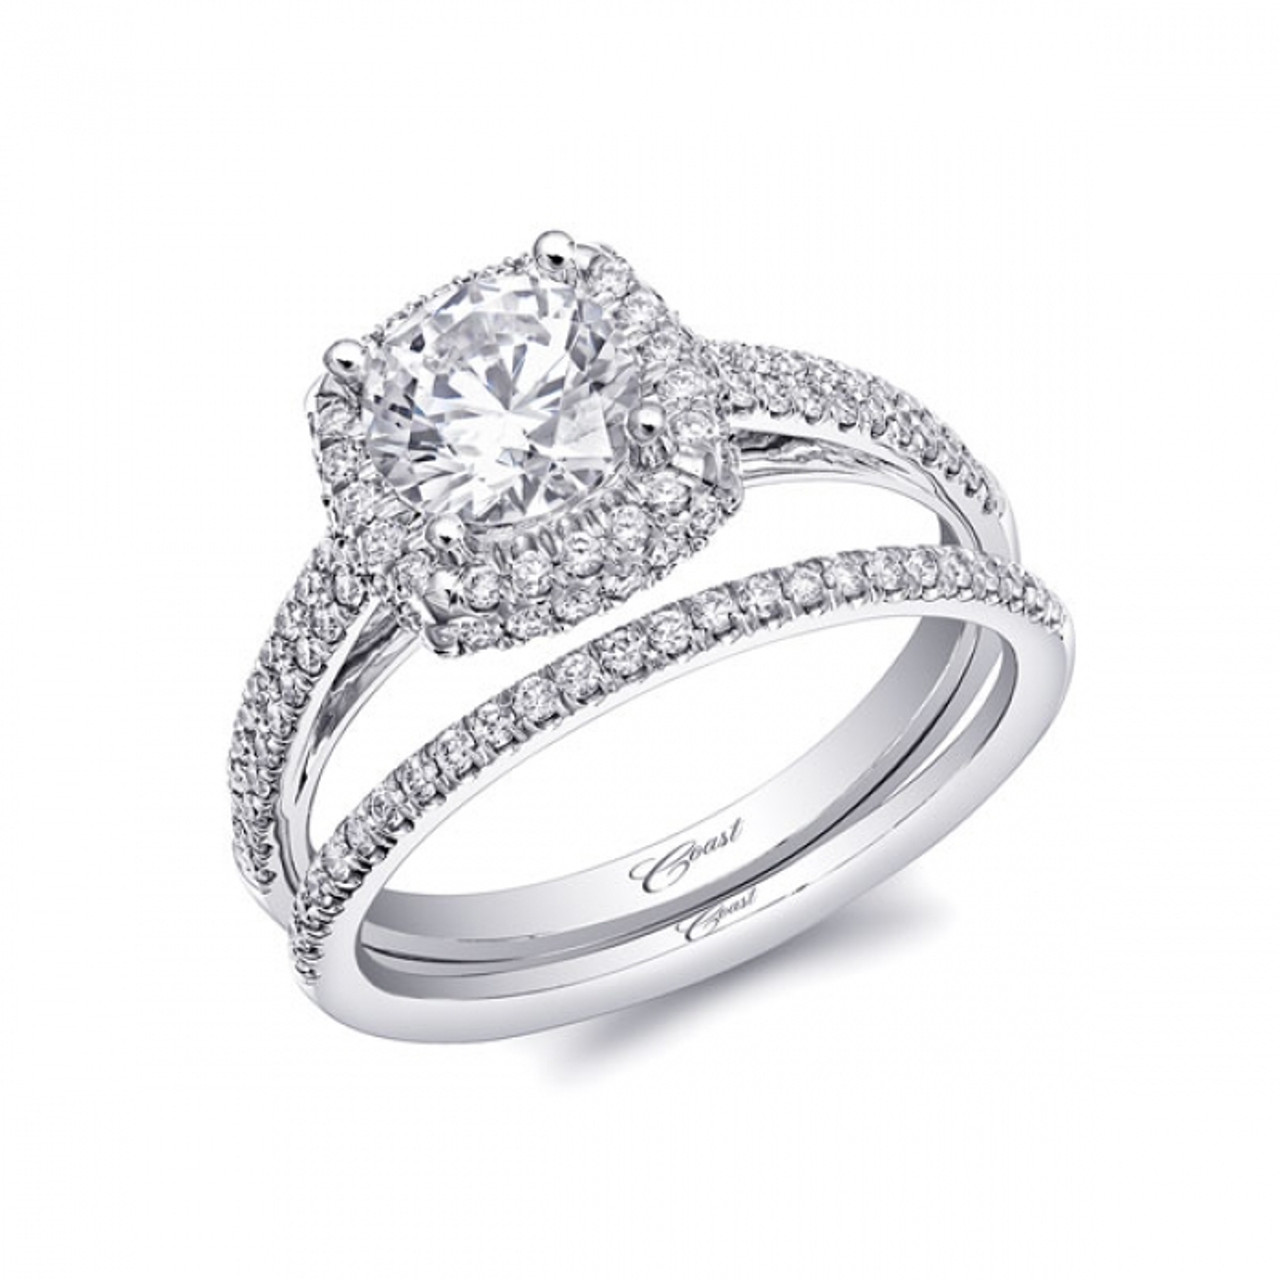 Cushion Double Halo Micro Pave Engagement Ring Setting 038ctw